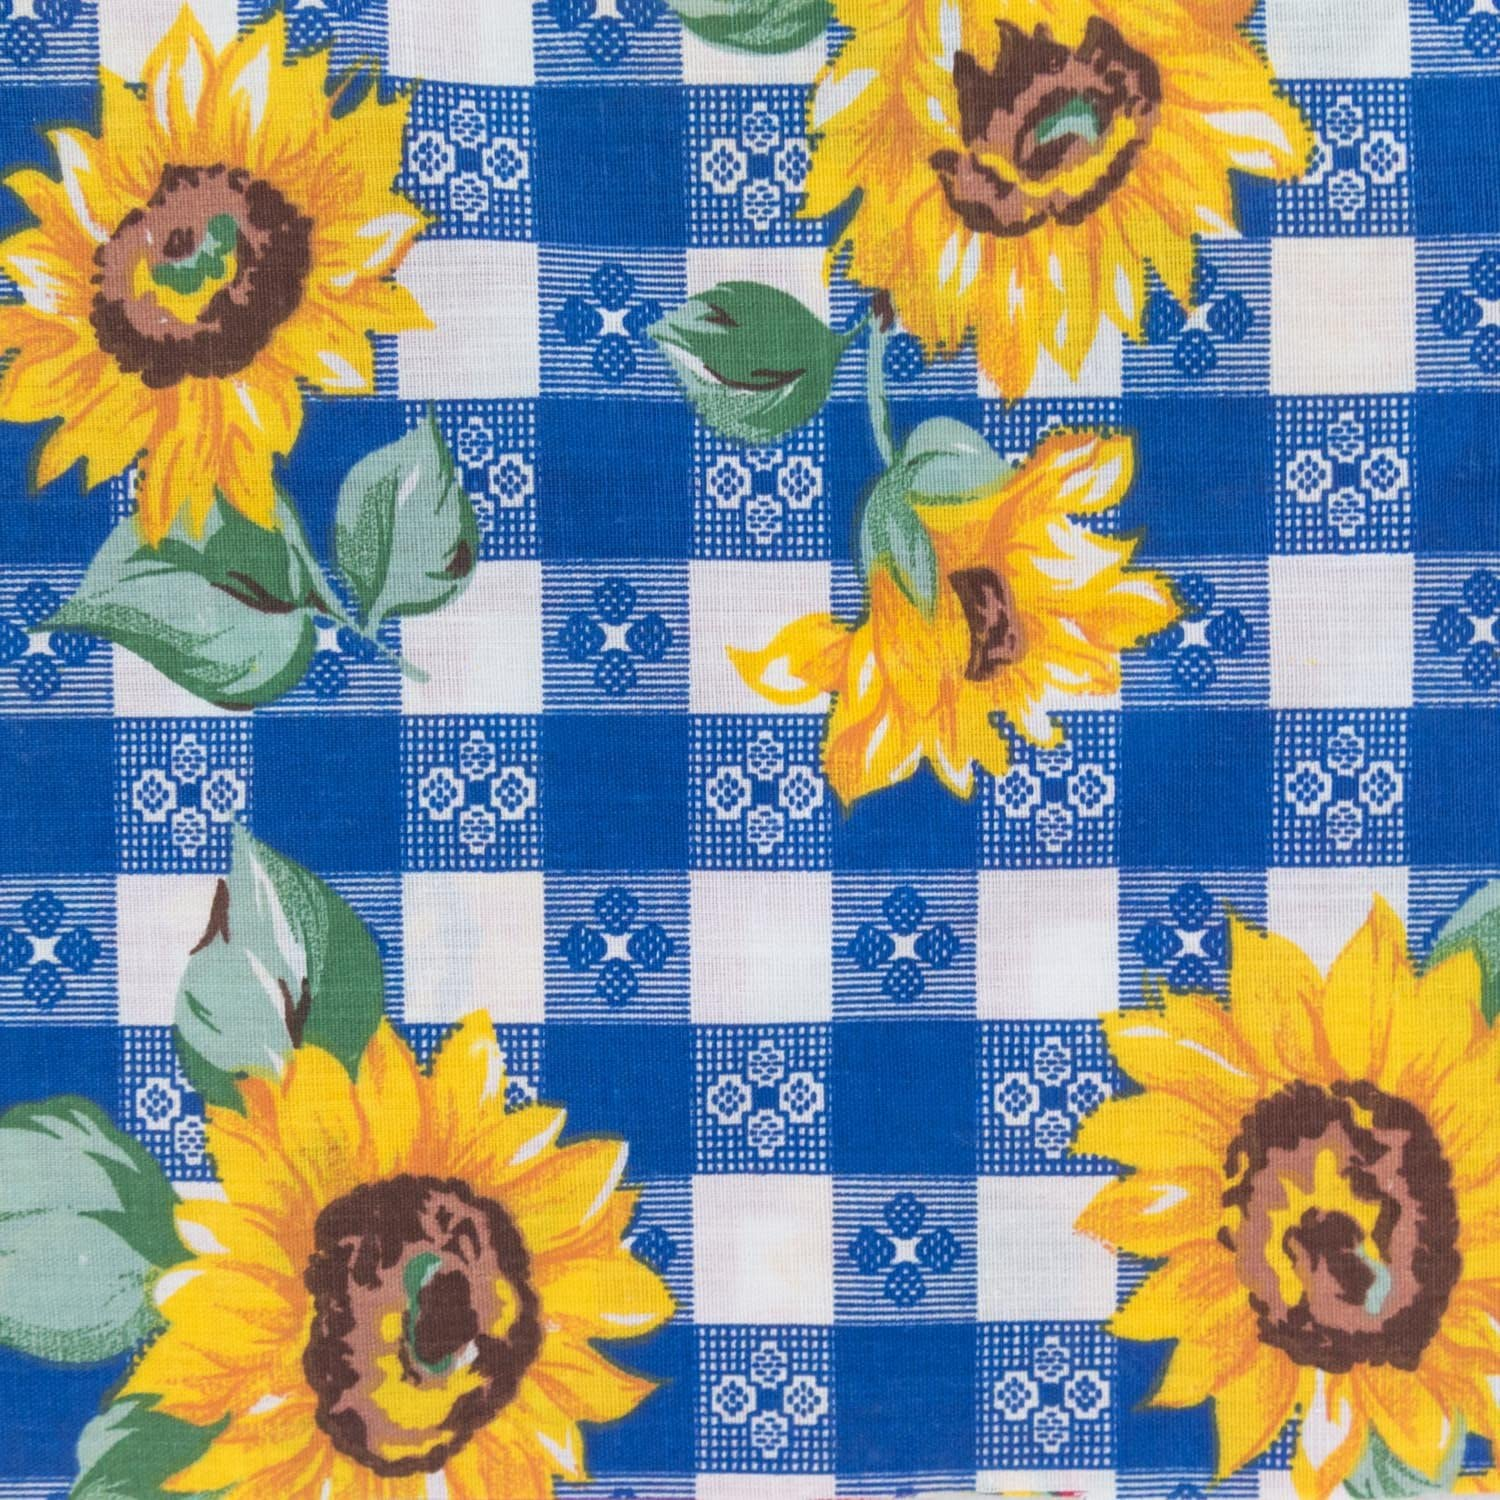 Plaid Sunflower Poly Cotton Print Fabric 58 Wide by The Yard Blue